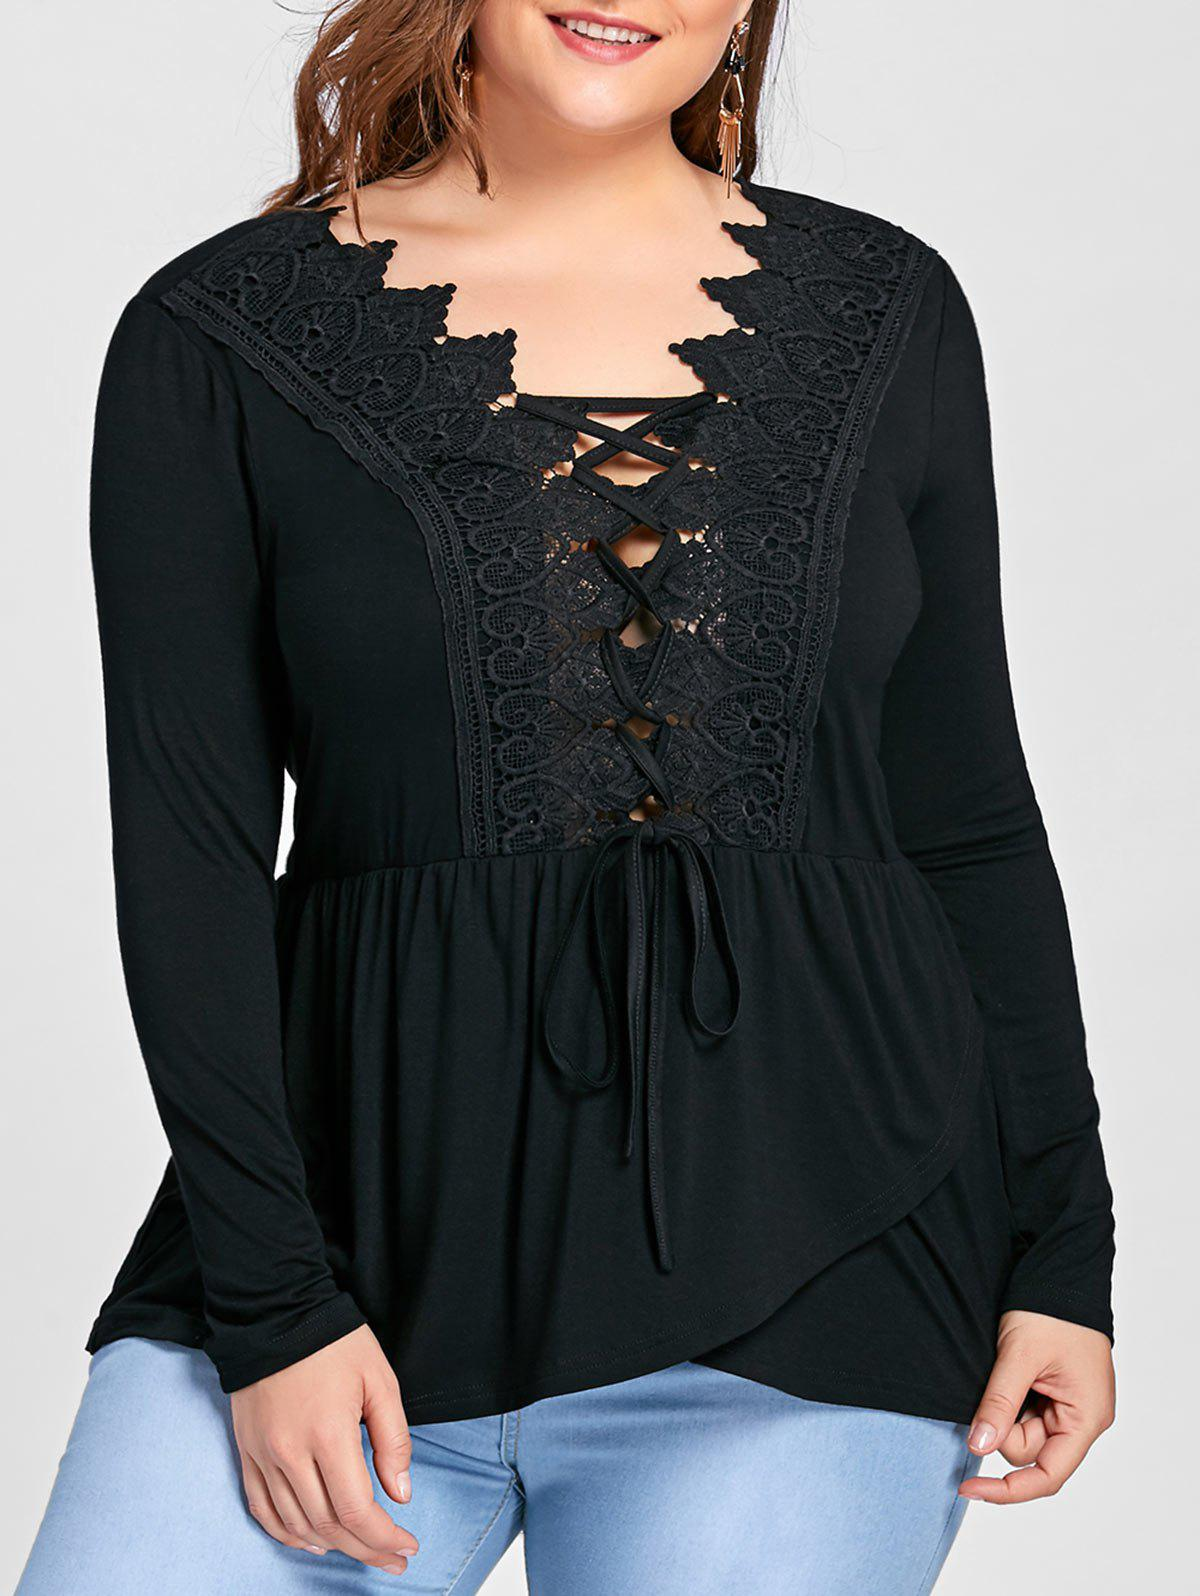 Long Sleeve Lace Up Lace Panel Asymmetric T-shirtWOMEN<br><br>Size: 3XL; Color: BLACK; Material: Cotton,Spandex; Shirt Length: Long; Sleeve Length: Full; Collar: V-Neck; Style: Fashion; Season: Fall,Spring; Embellishment: Criss-Cross,Lace,Panel; Pattern Type: Others; Weight: 0.3500kg; Package Contents: 1 x T-shirt;